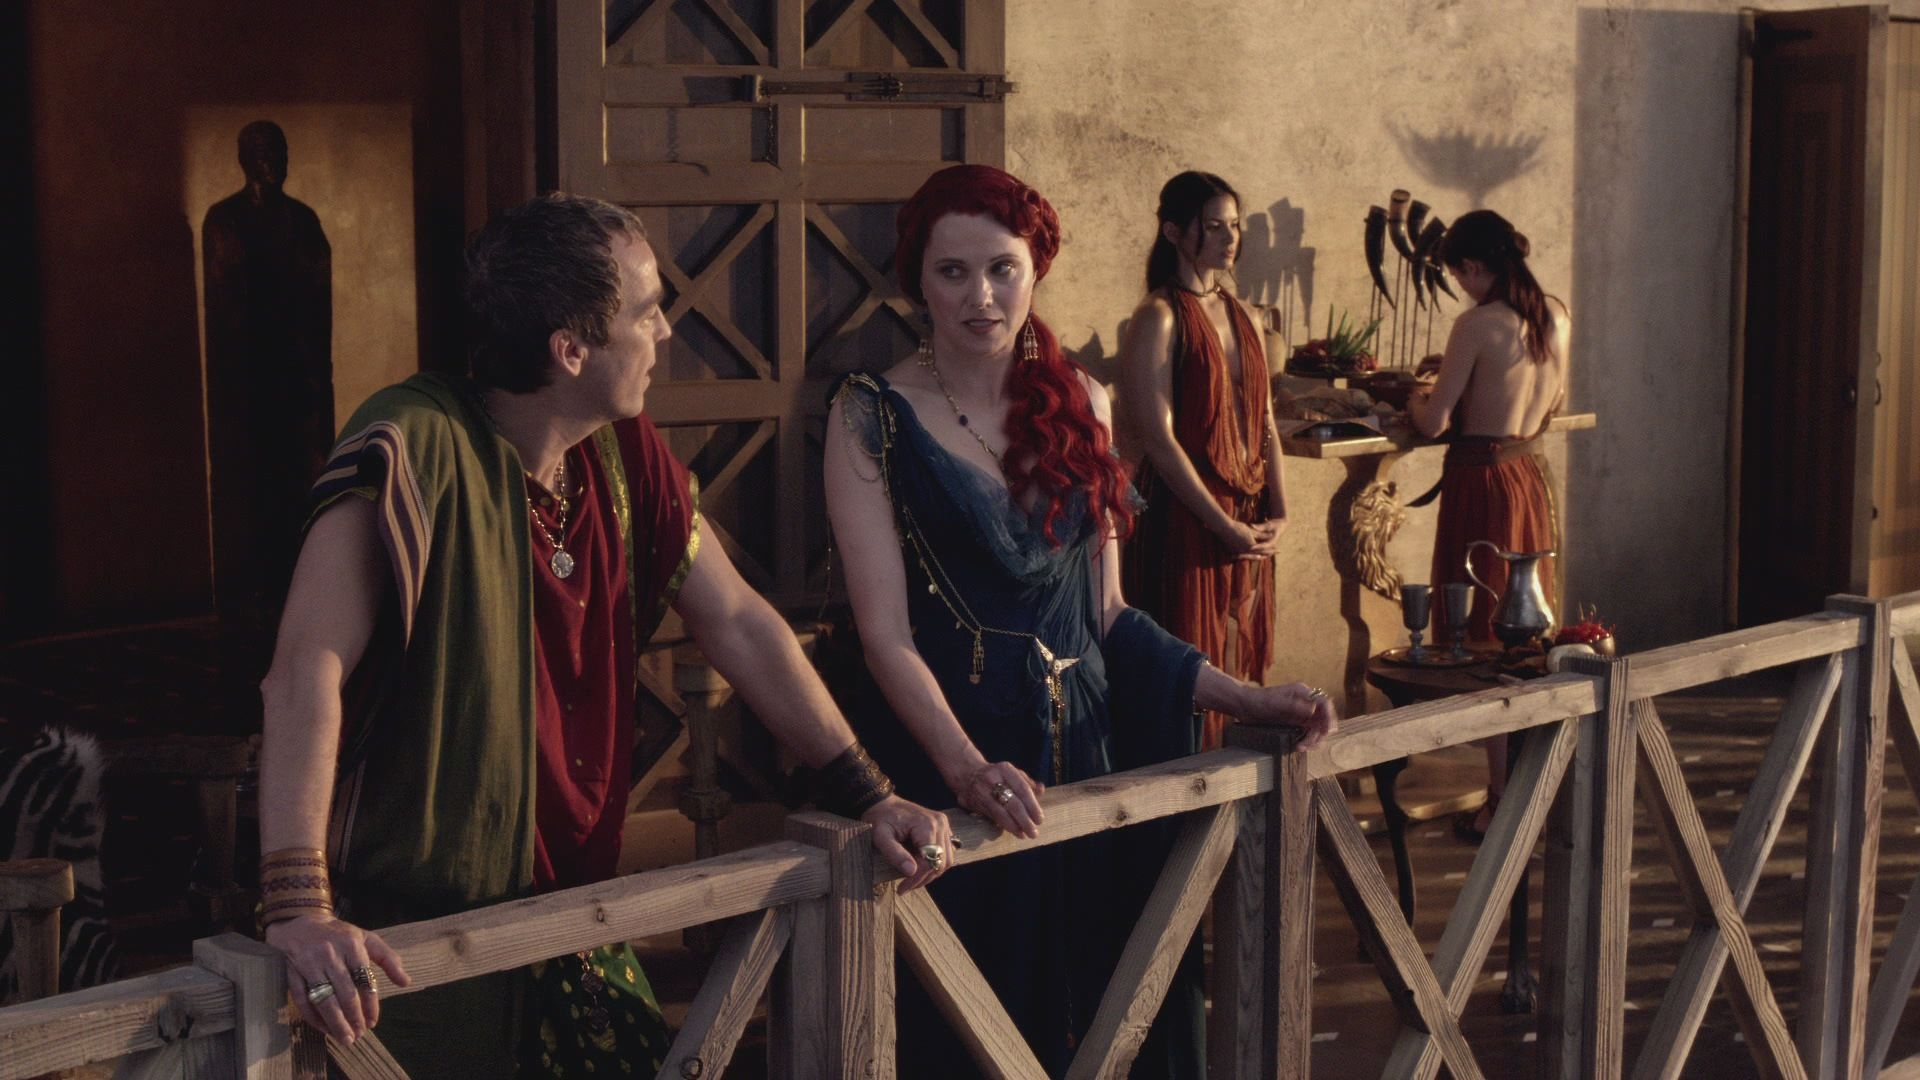 kill them all | spartacus and blood